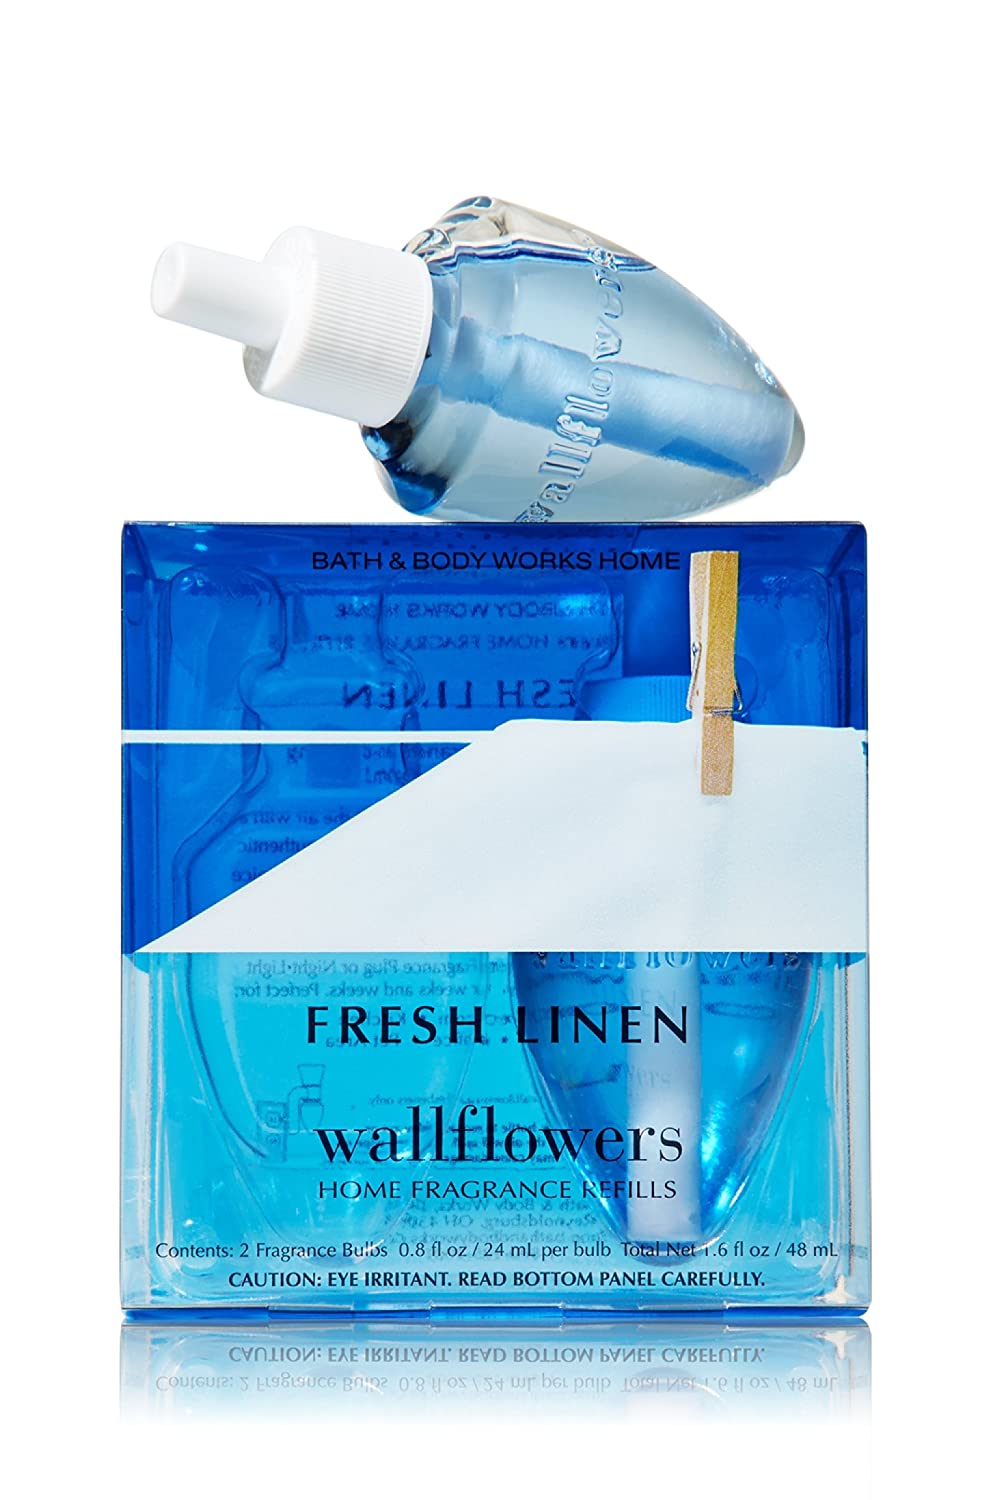 Bath & Body Works Fresh Linen Wallflowers Home Fragrance Refills, 2-Pack (1.6 fl oz total)